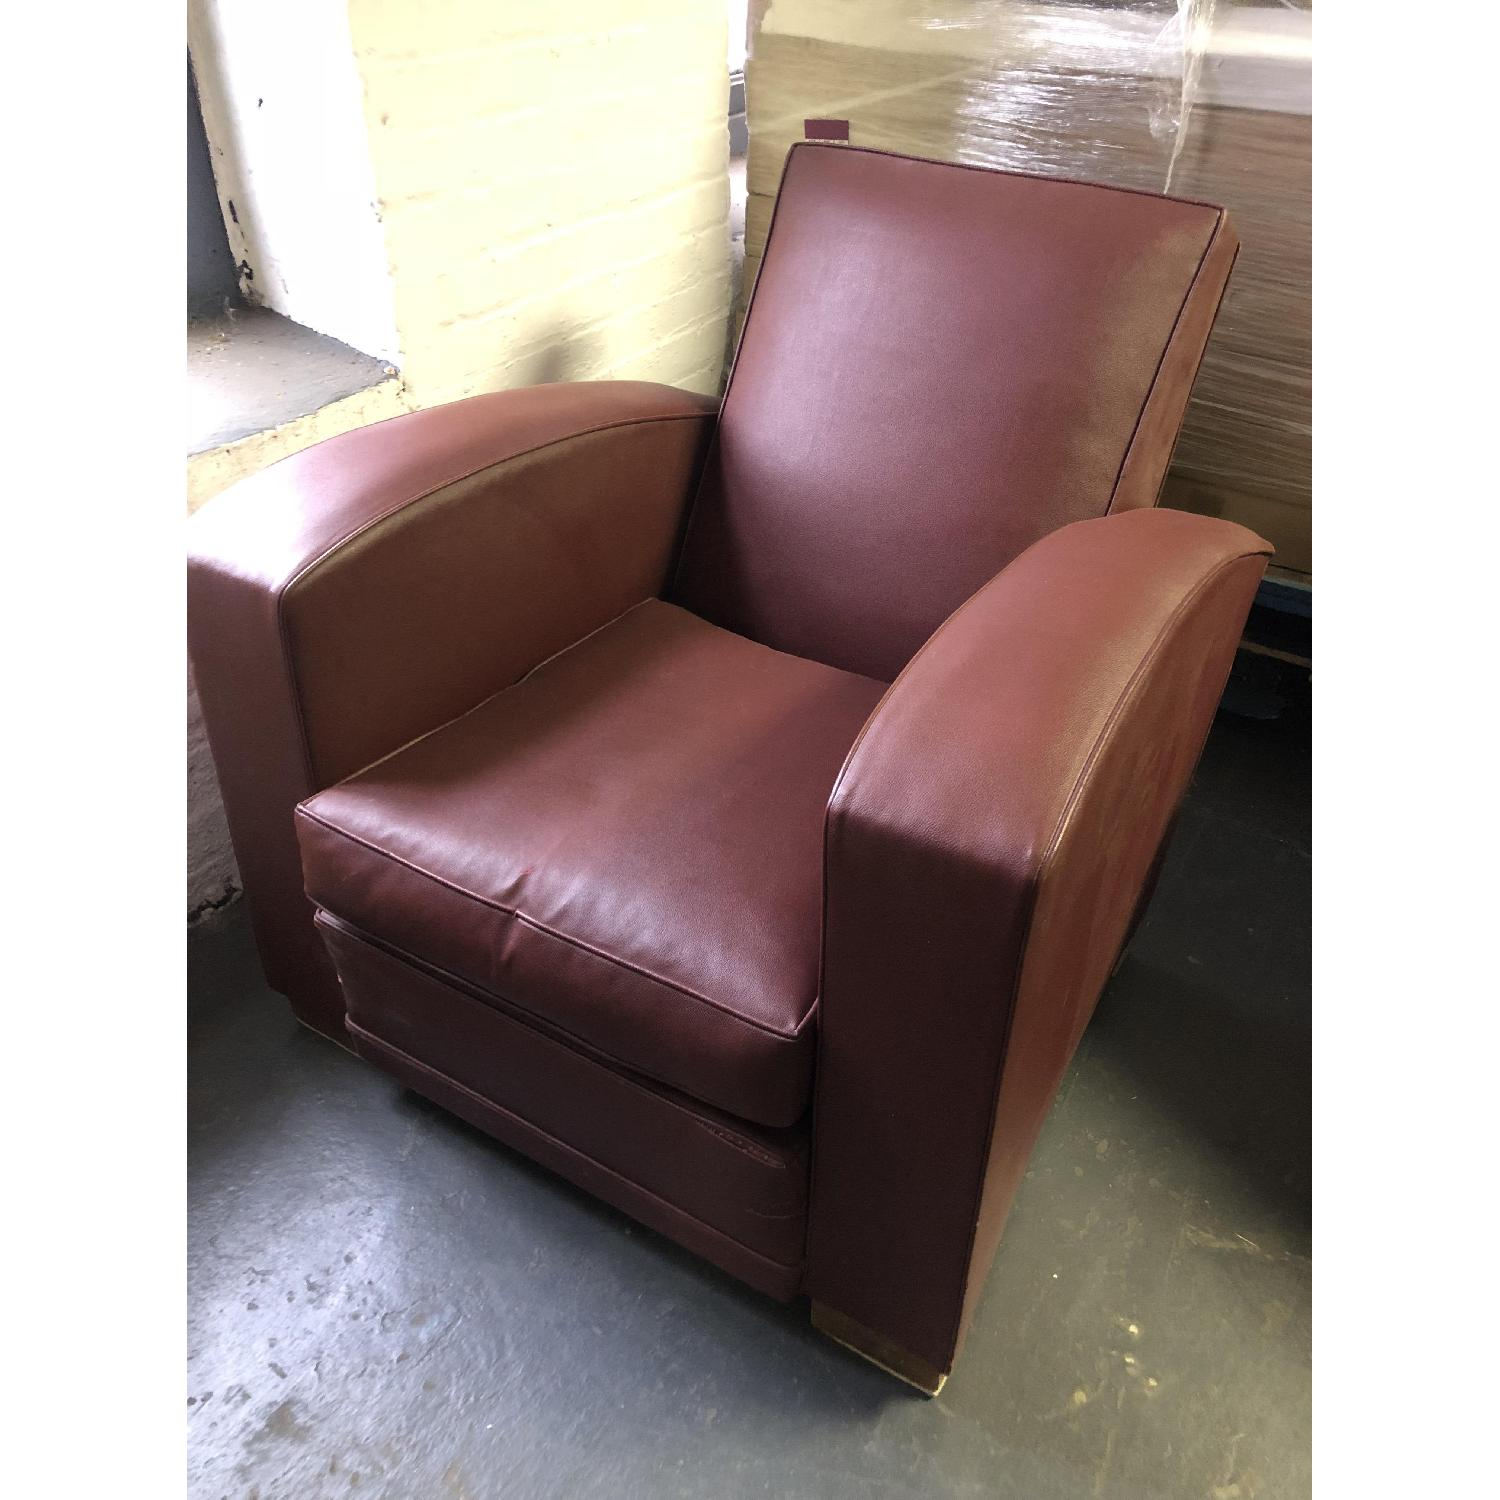 Vintage French Deco Club Chair - image-3